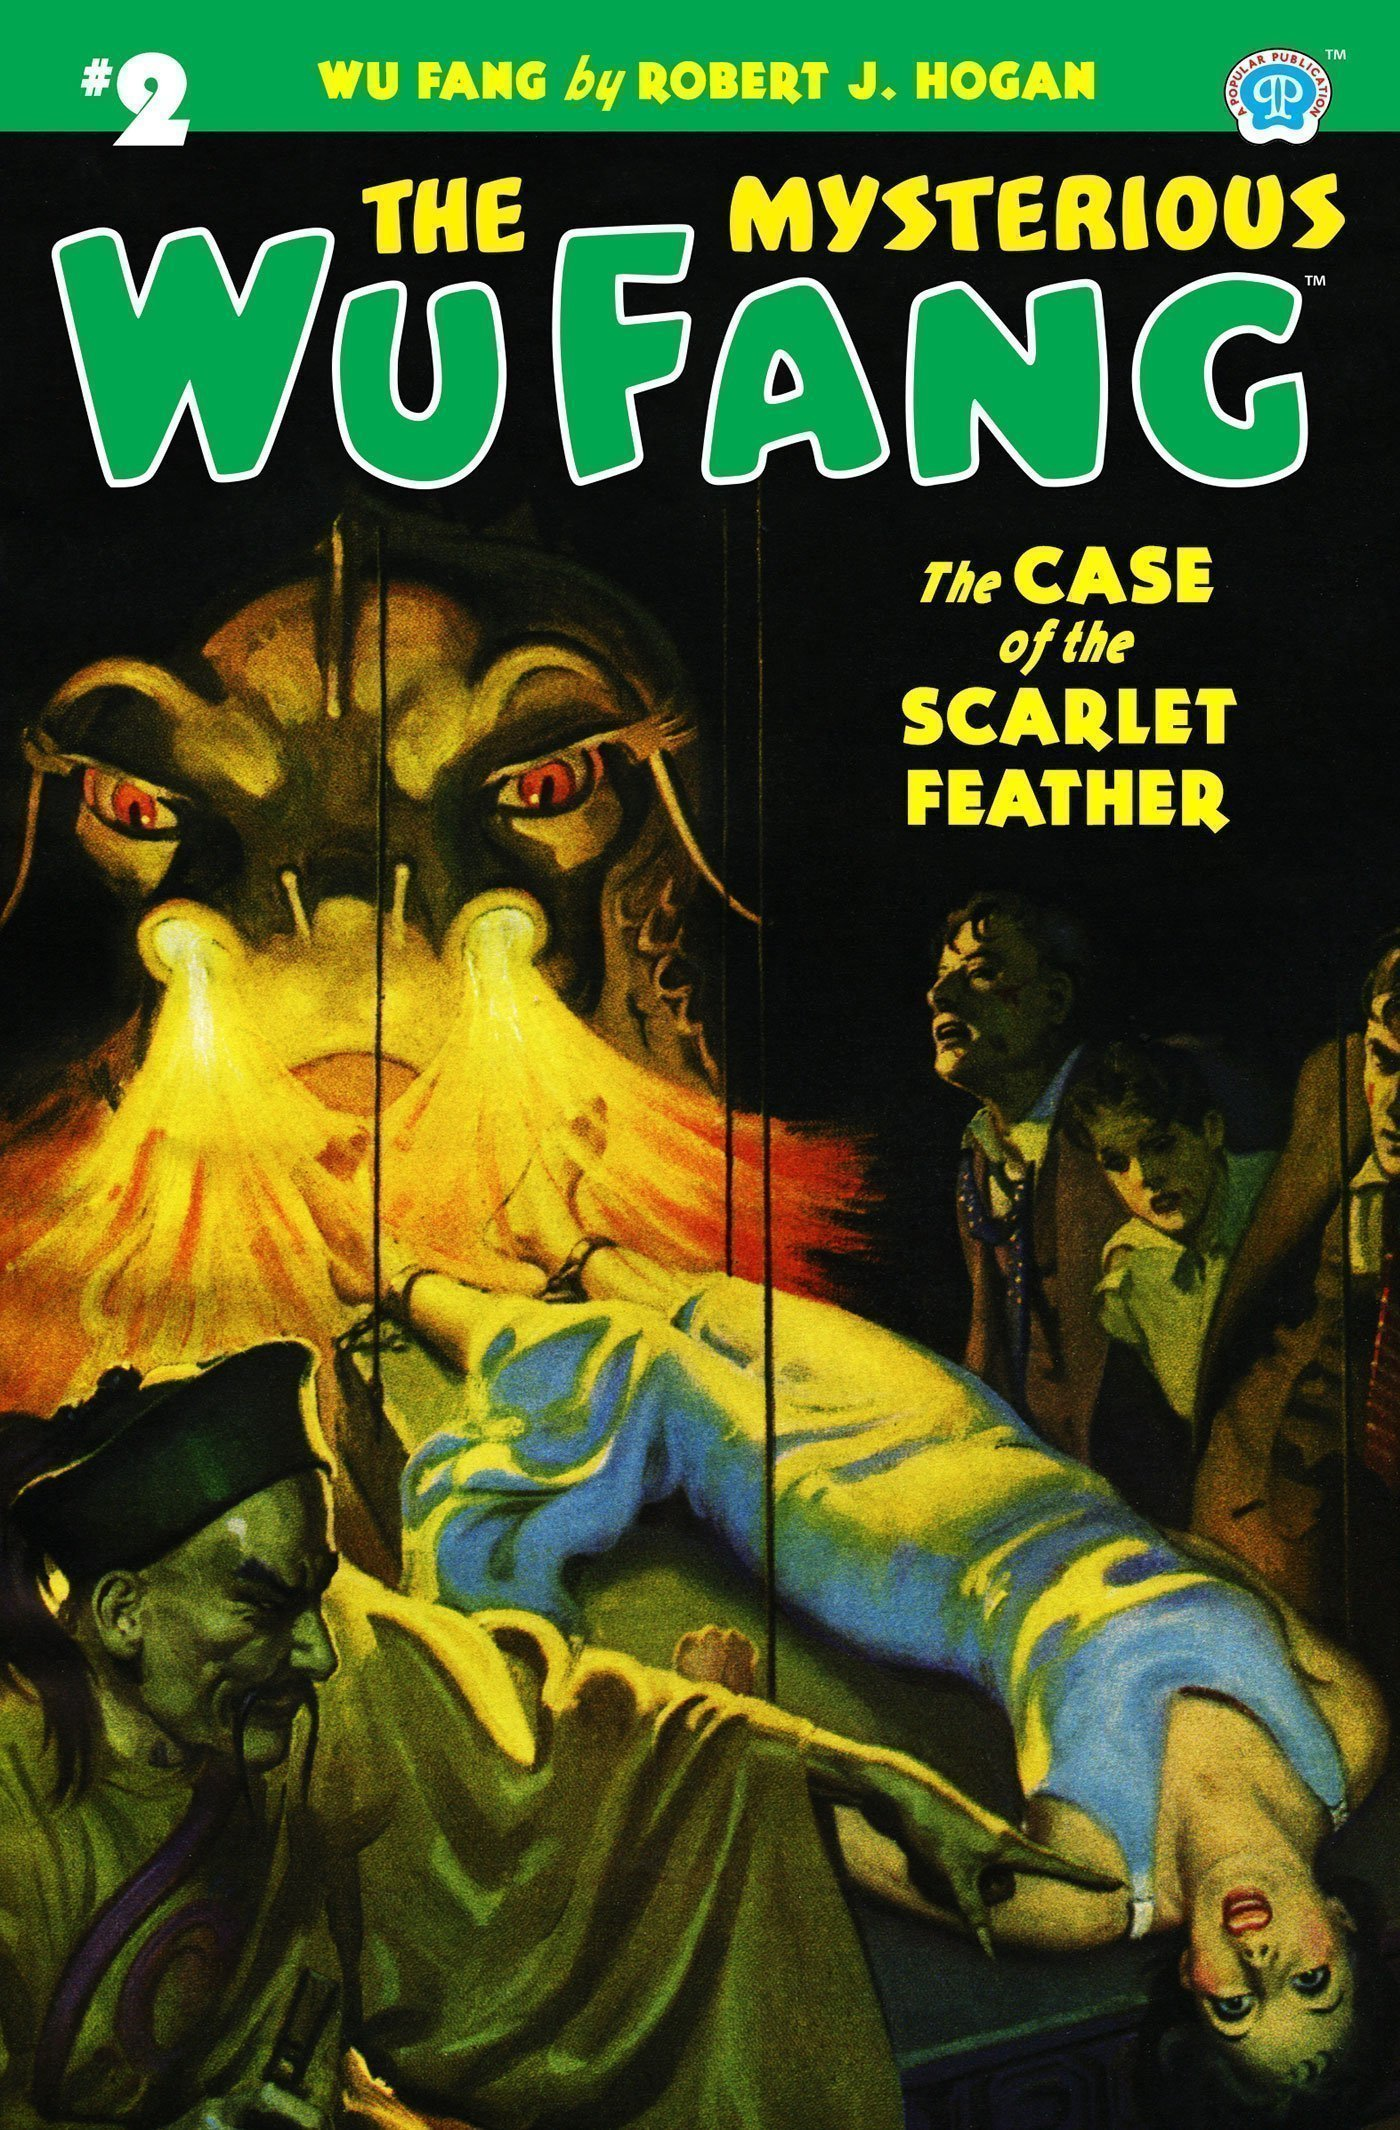 The Mysterious Wu Fang #2: The Case of the Scarlet Feather